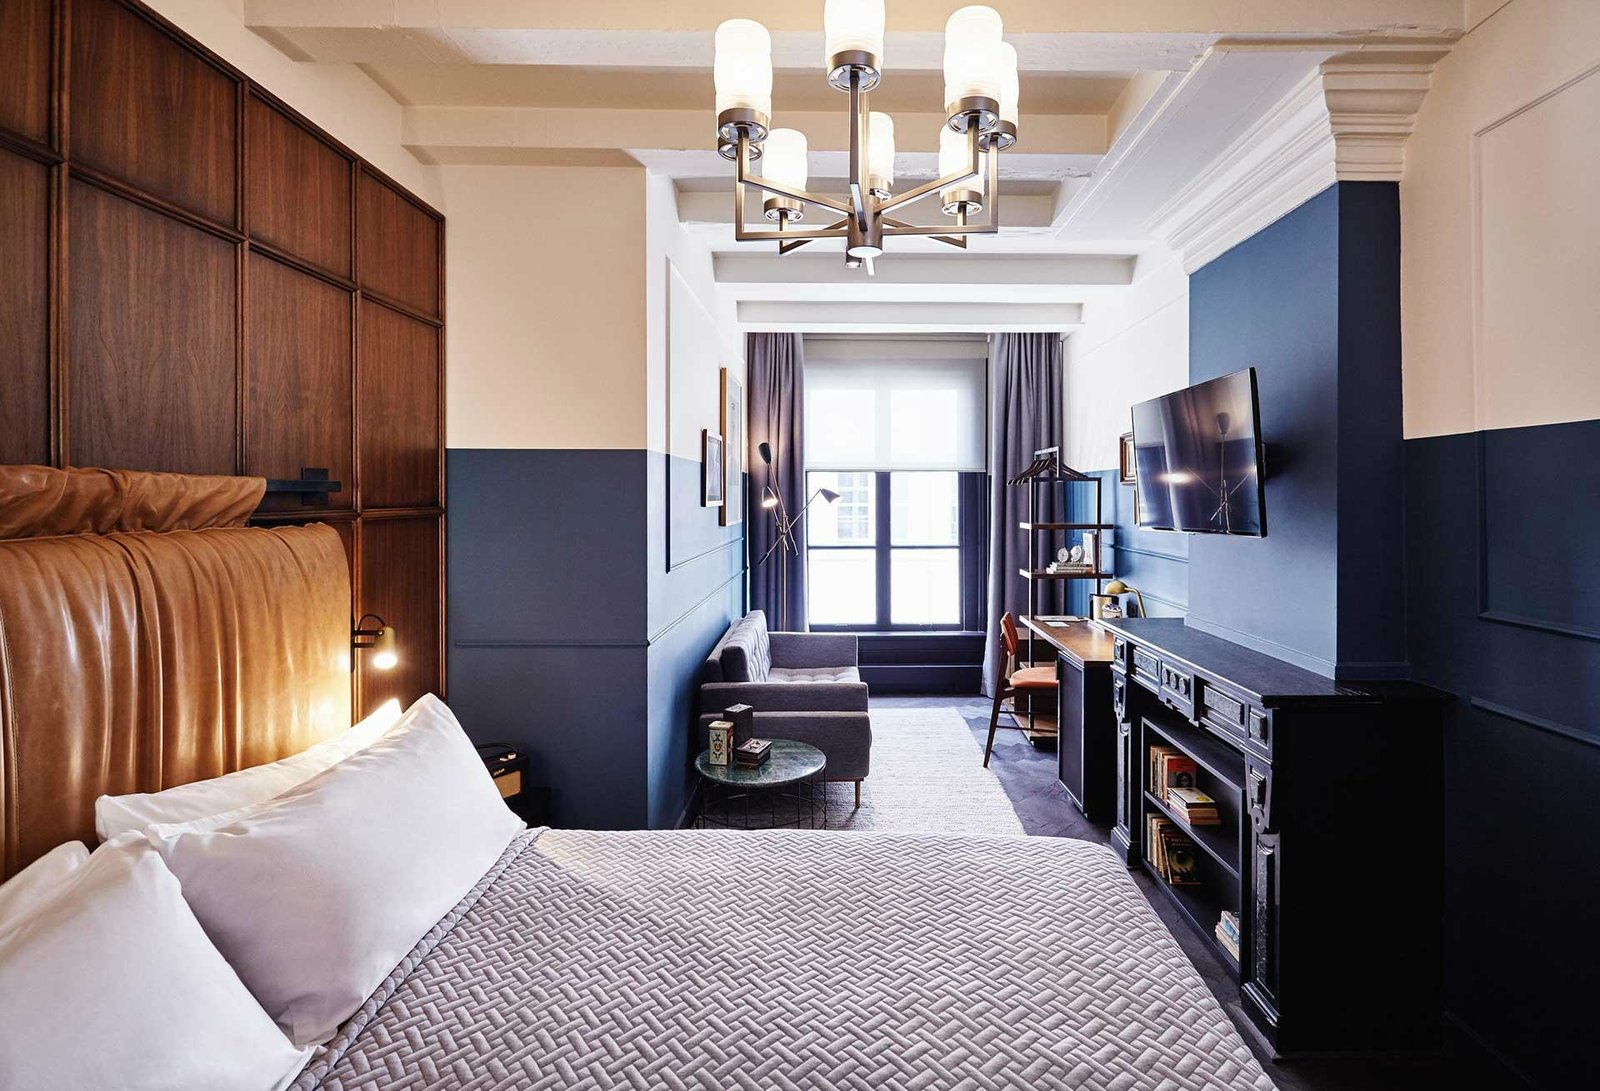 Bedroom, Pendant Lighting, Bed, Wall Lighting, and Rug Floor  The Hoxton Amsterdam